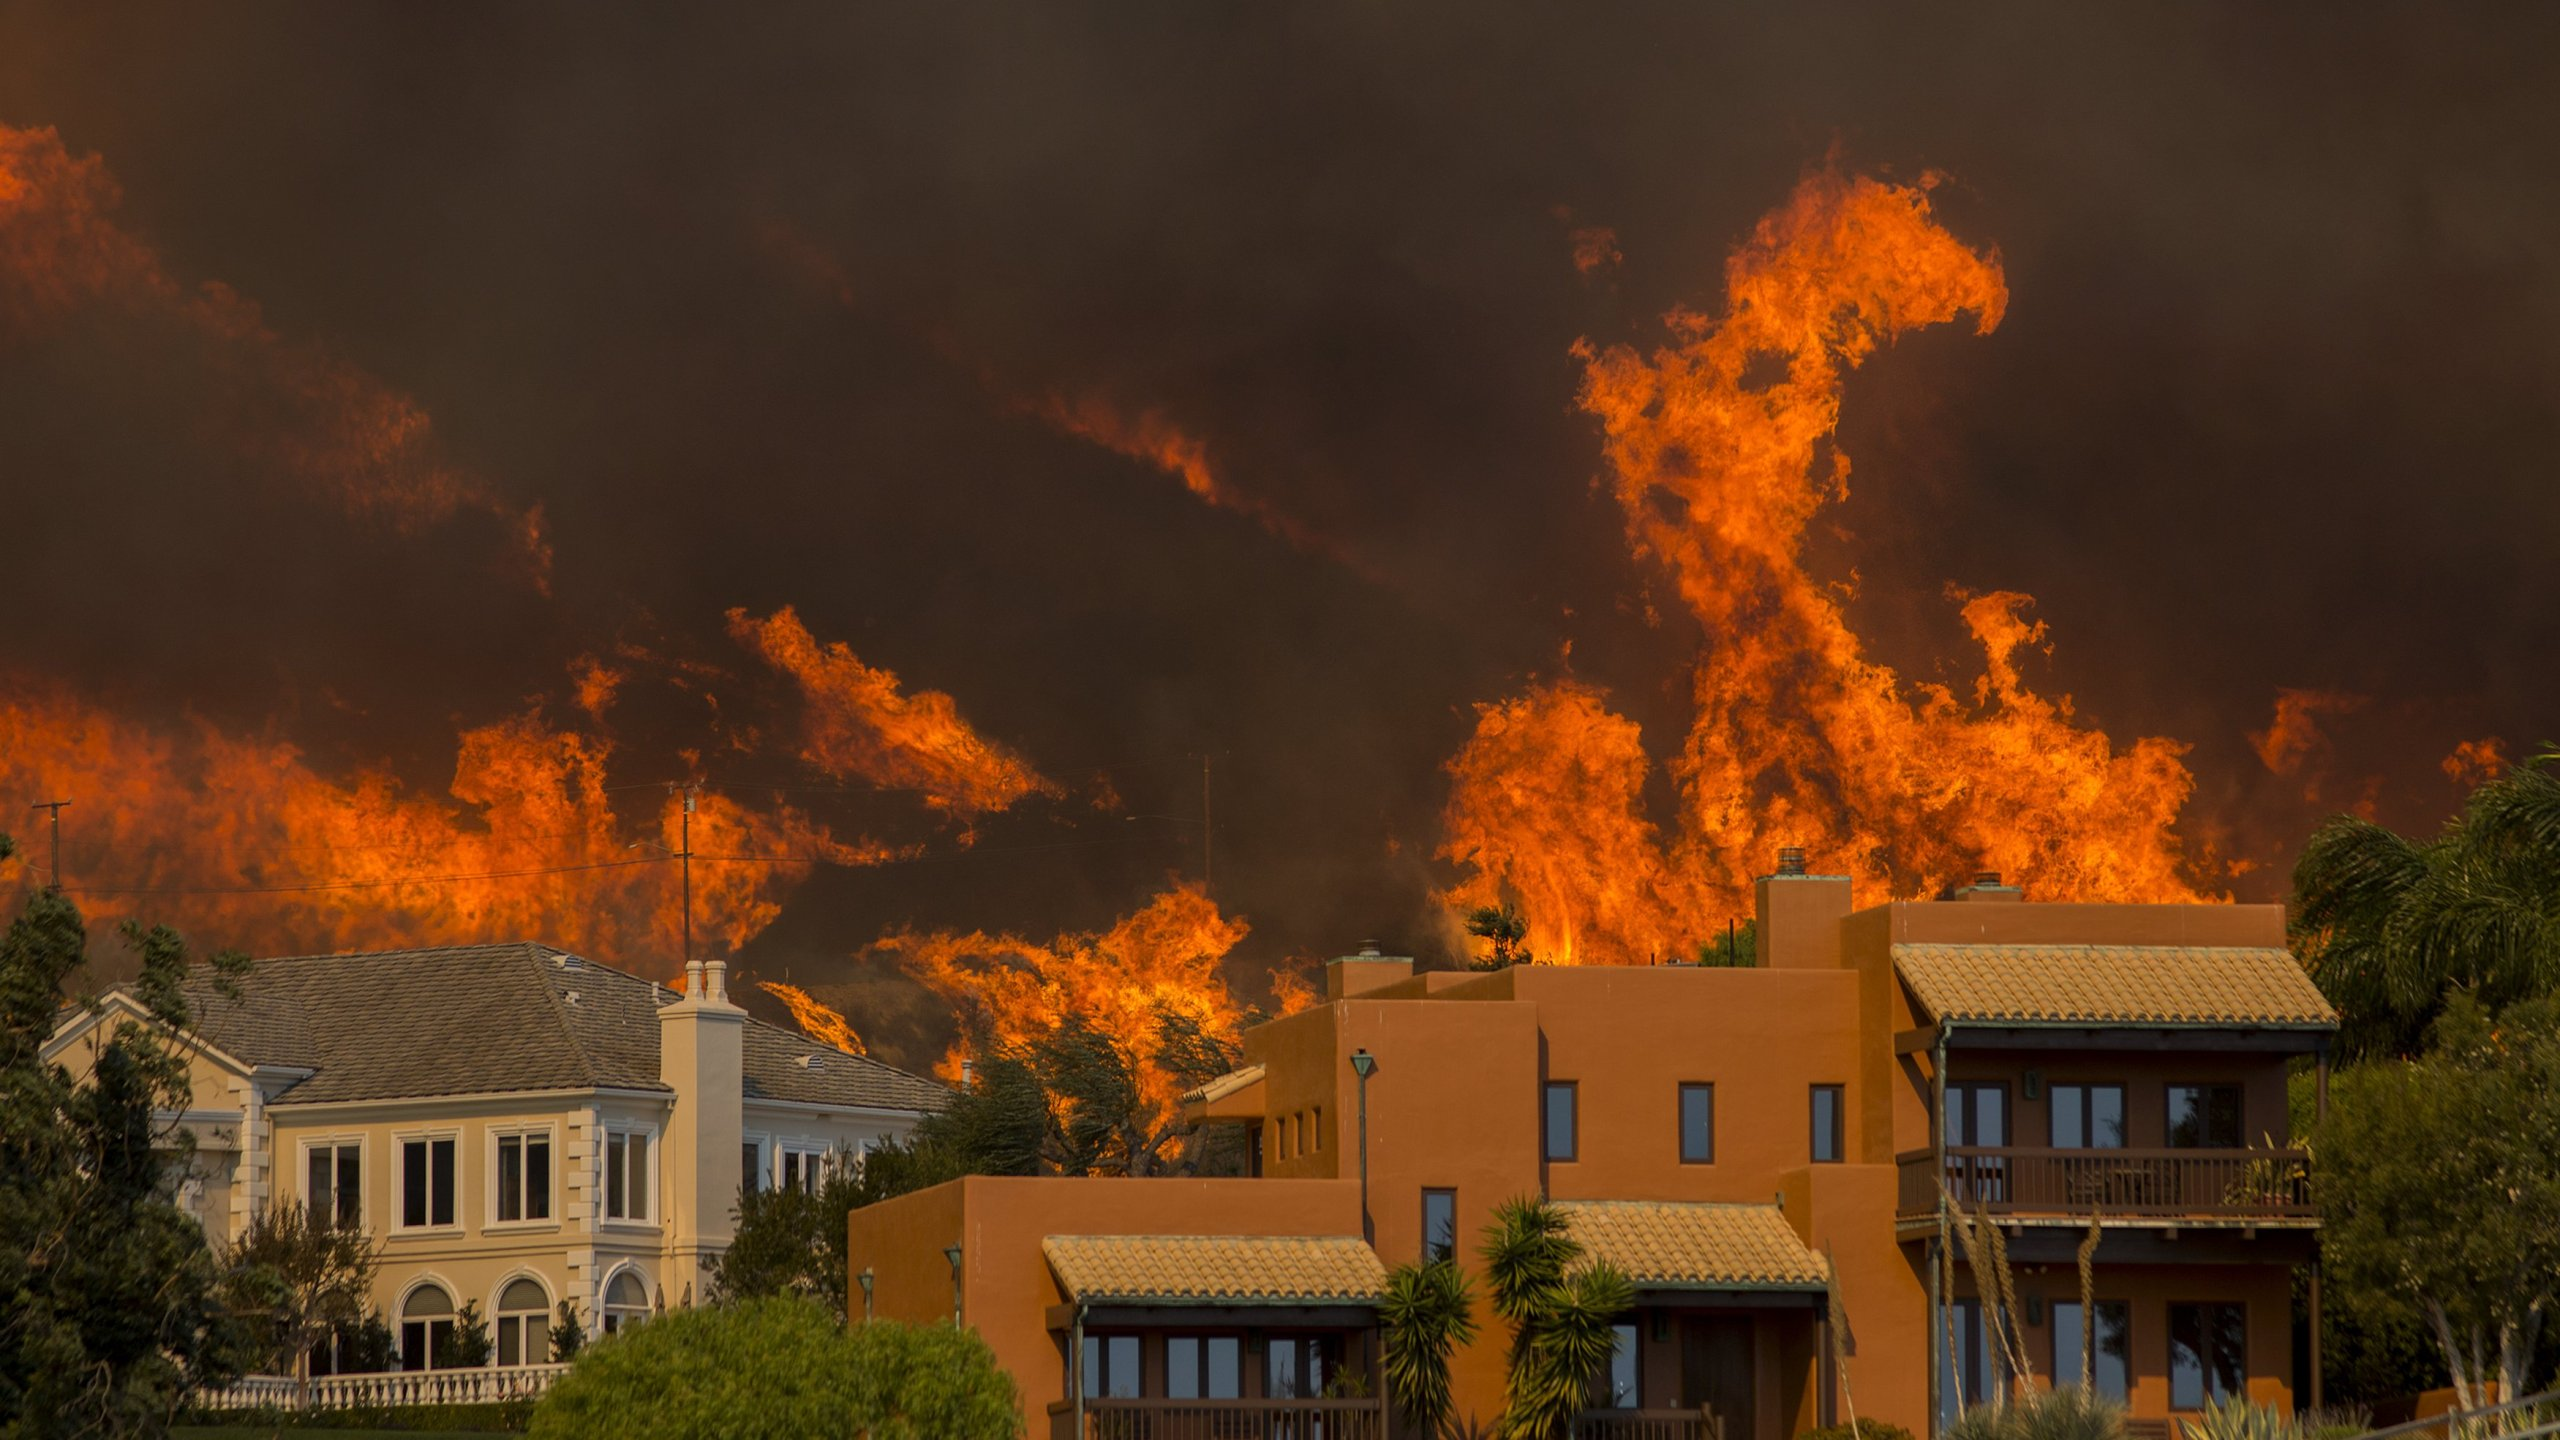 The Woolsey Fire approaches homes in Malibu on Nov. 9, 2018. (Credit: David McNew / Getty Images)